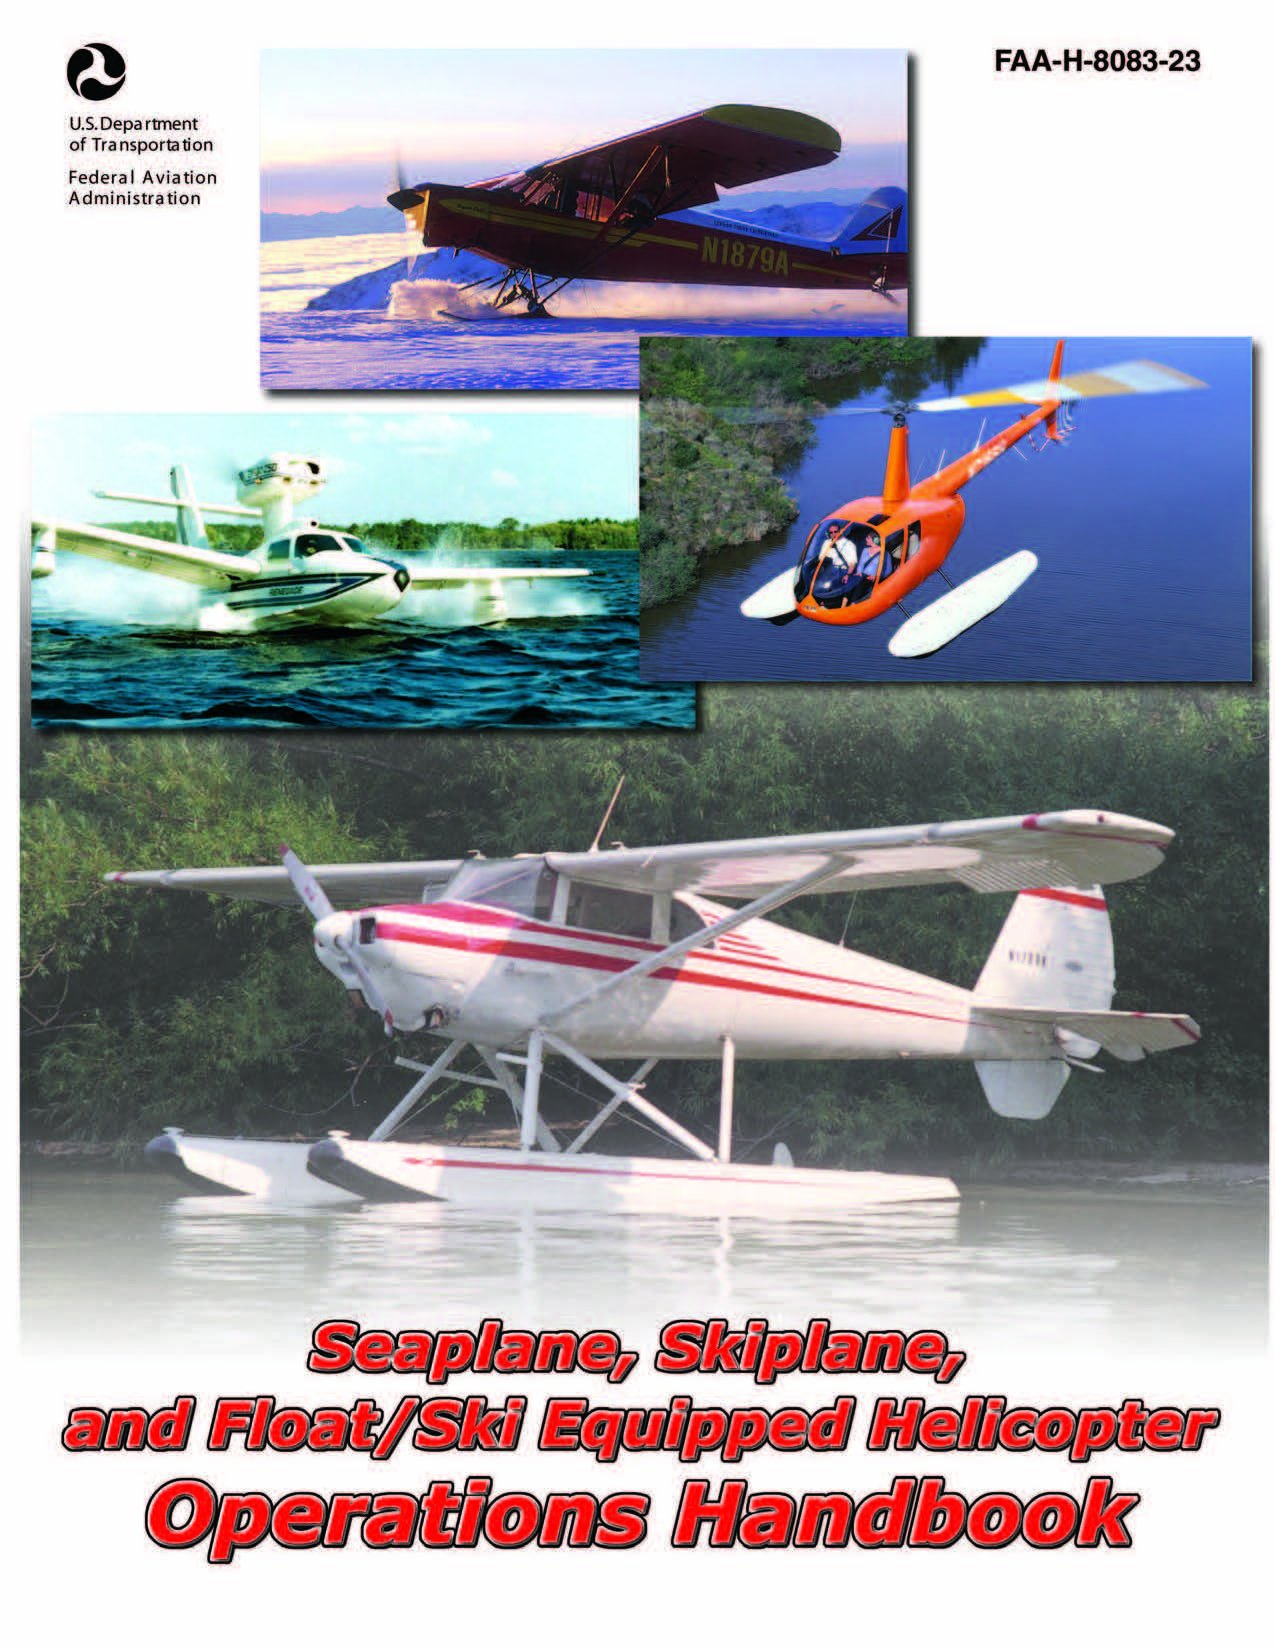 Read Online SEAPLANE, SKIPLANE, and FLOATSKI EQUIPPED HELICOPTER OPERATIONS HANDBOOK [Loose Leaf Edition] pdf epub